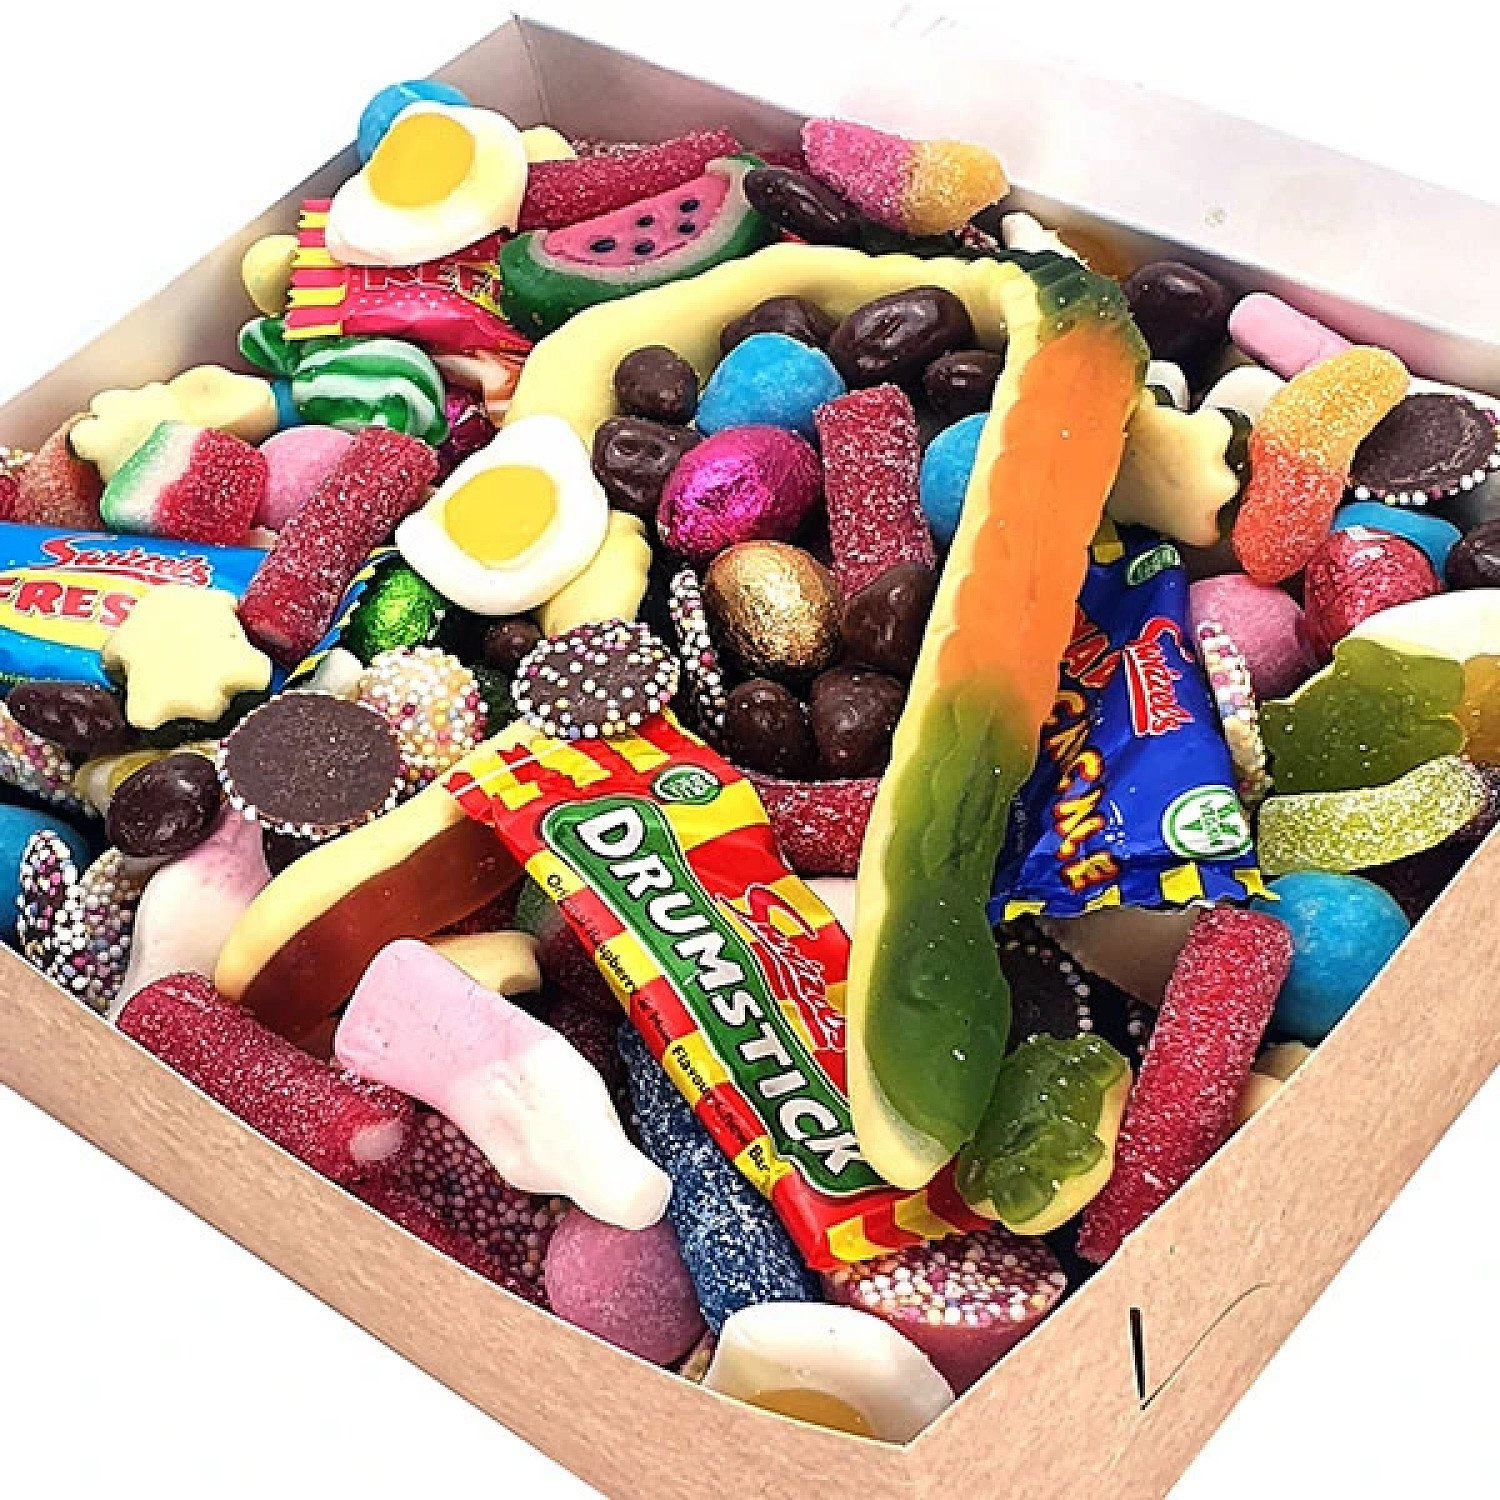 PICK 'N MIX LARGE 1.6KG SWEET GIFT BOX £26.99 Free Postage